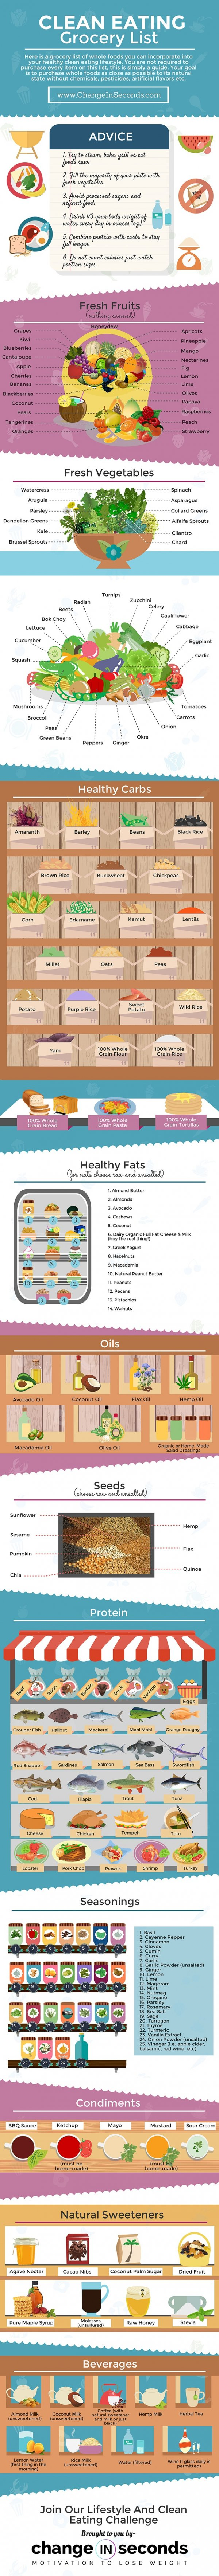 The Ultimate Clean-Eating Grocery List